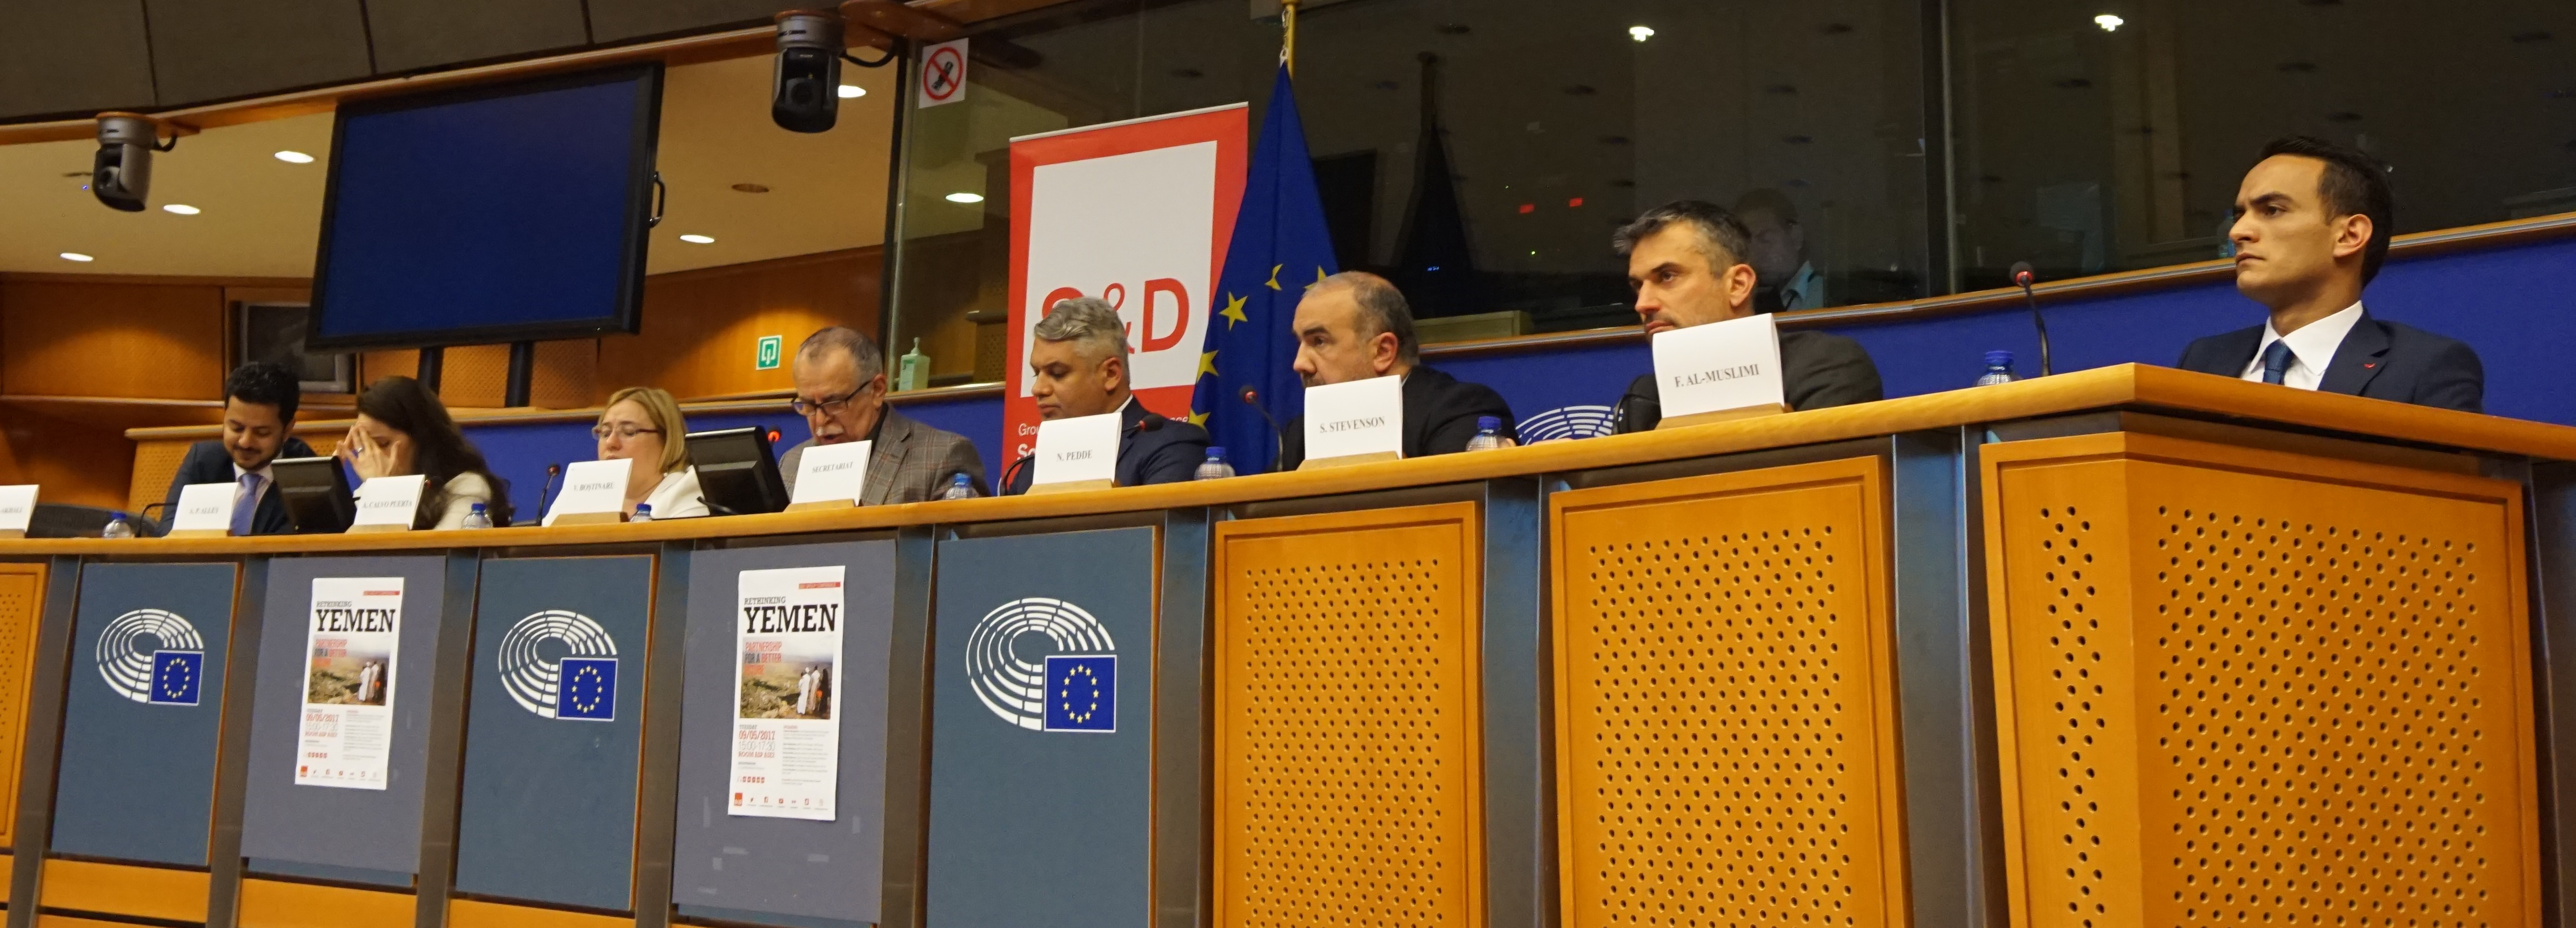 S&D Conference on Yemen